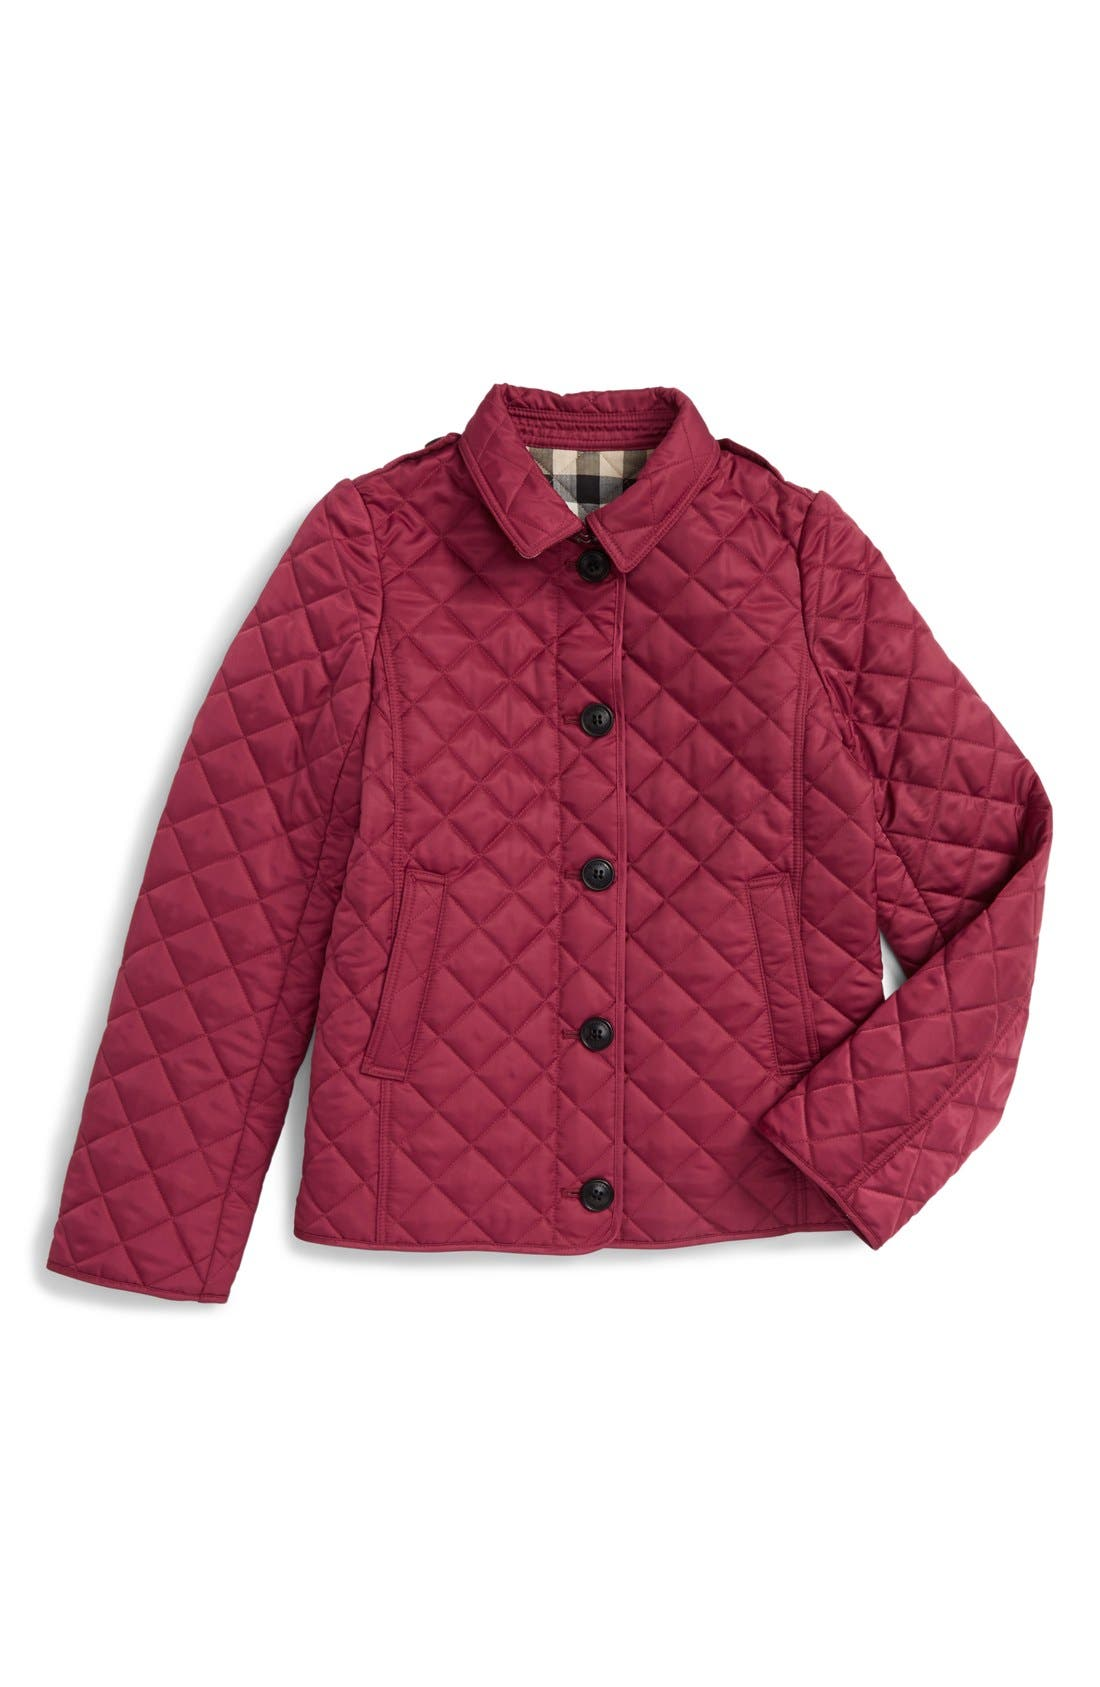 Alternate Image 1 Selected - Burberry 'Mini Ashurst' Quilted Jacket (Big Girls & Little Girls)